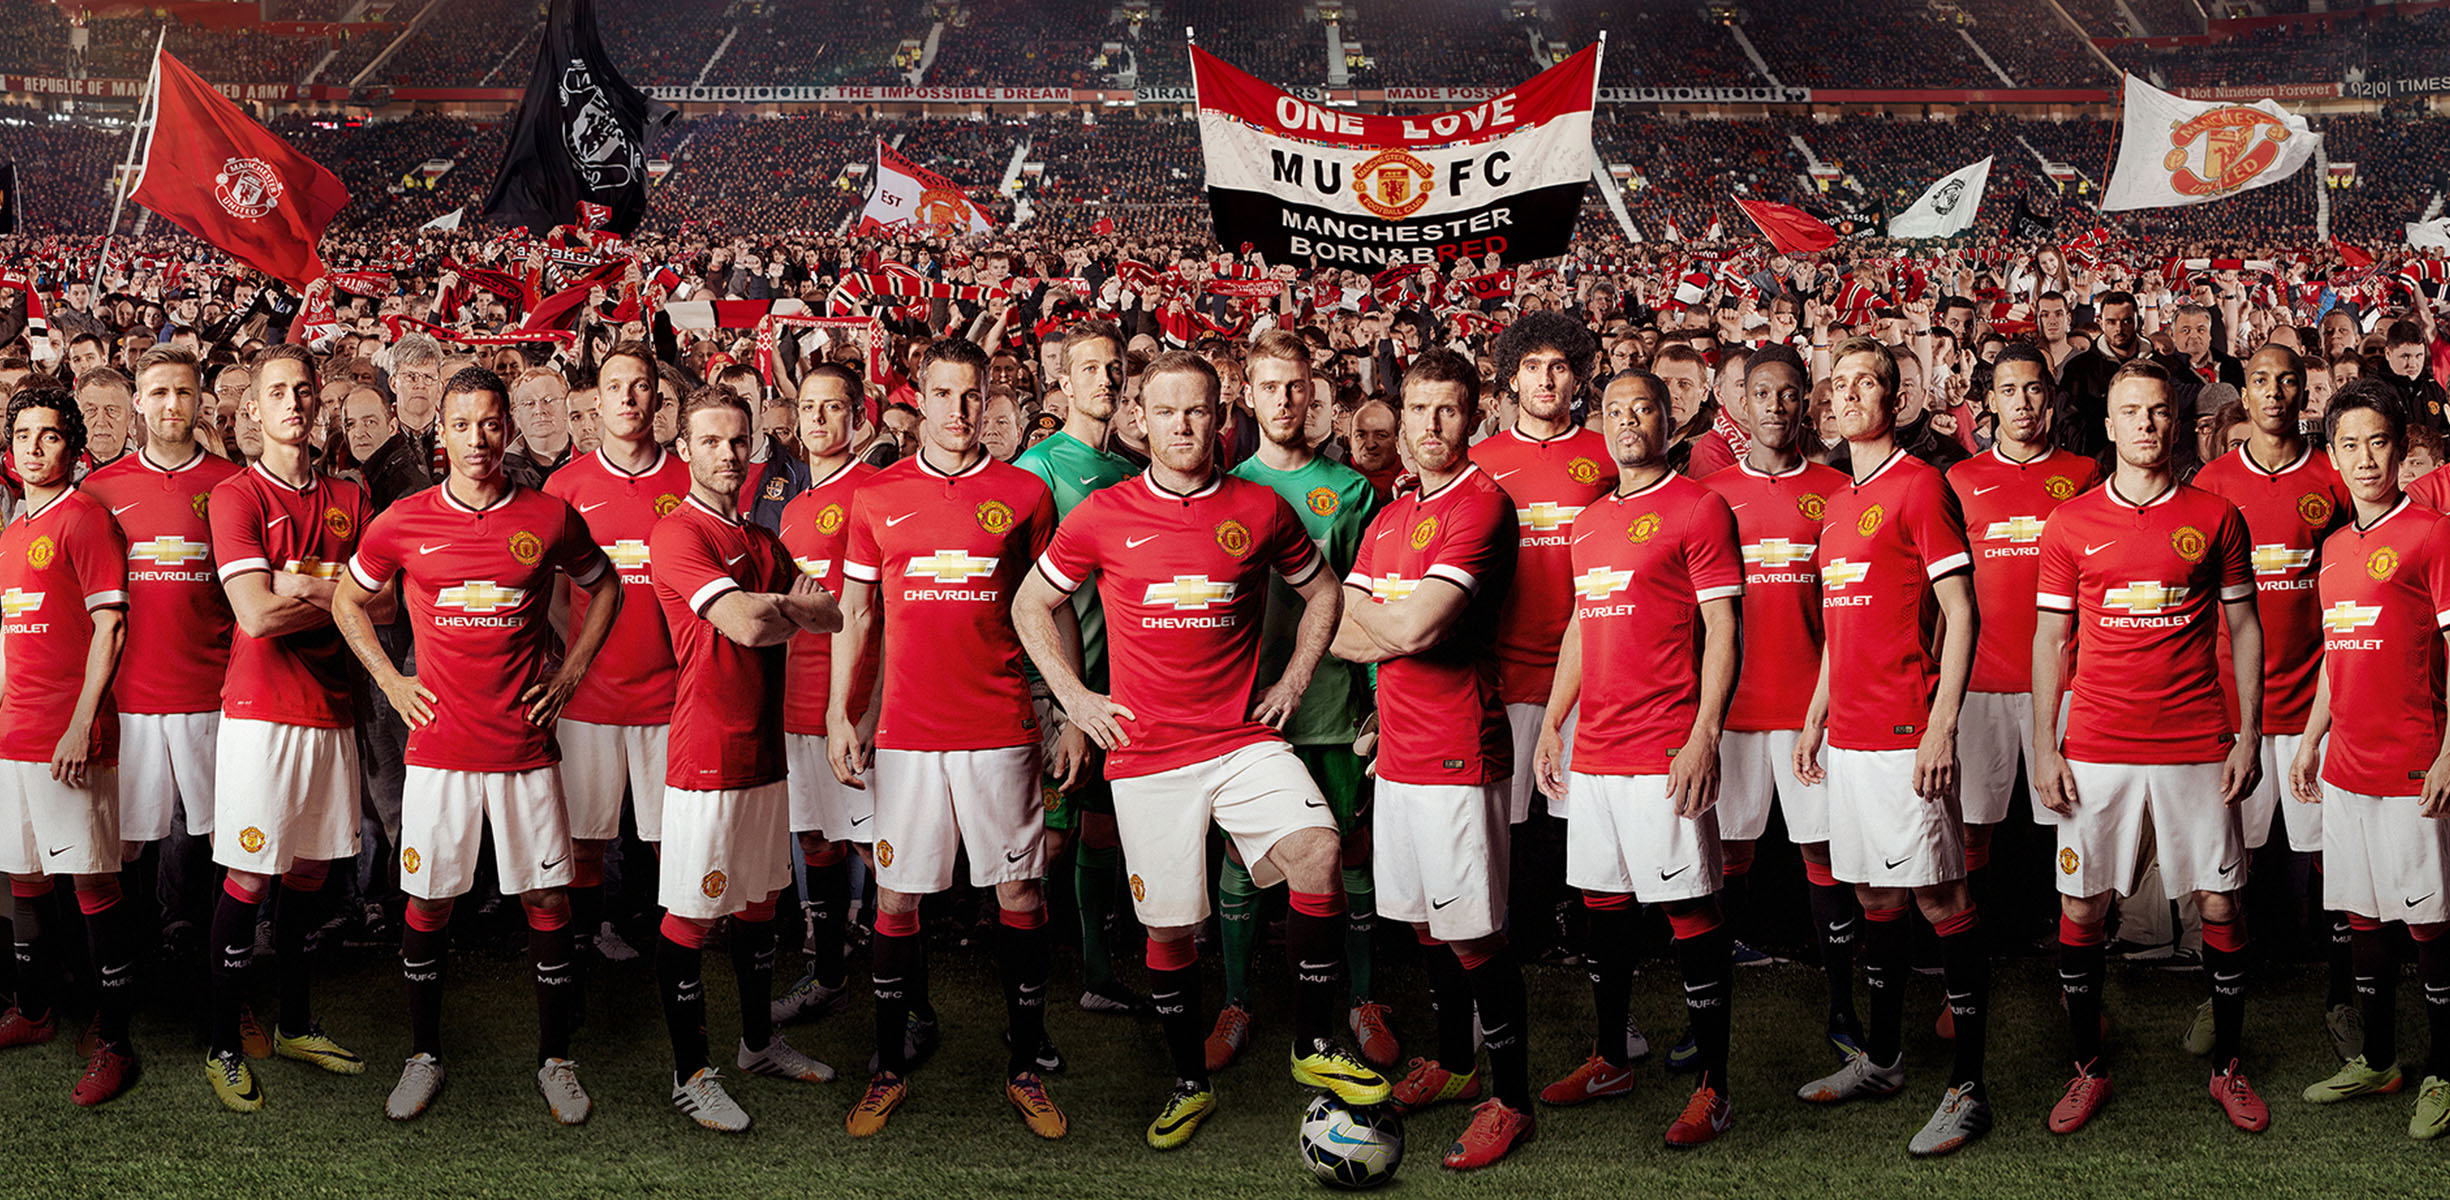 Manchester United players forgoing free fleet of Chevrolet ...